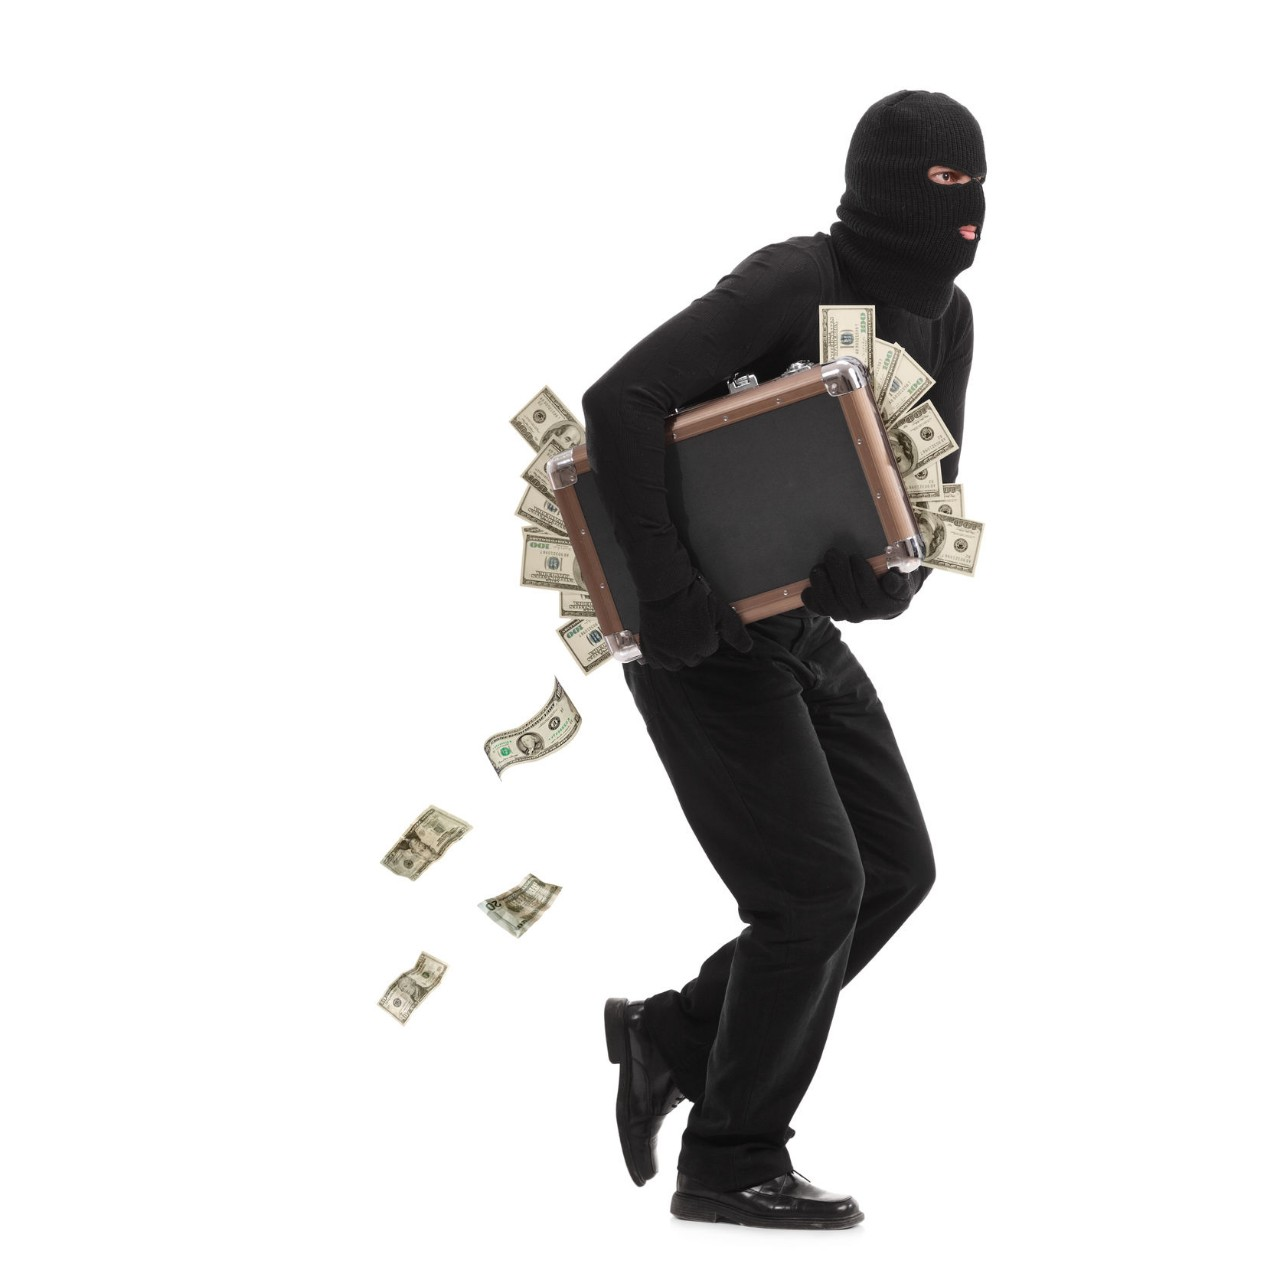 a man in a ski mask runs away with a suitcase of money